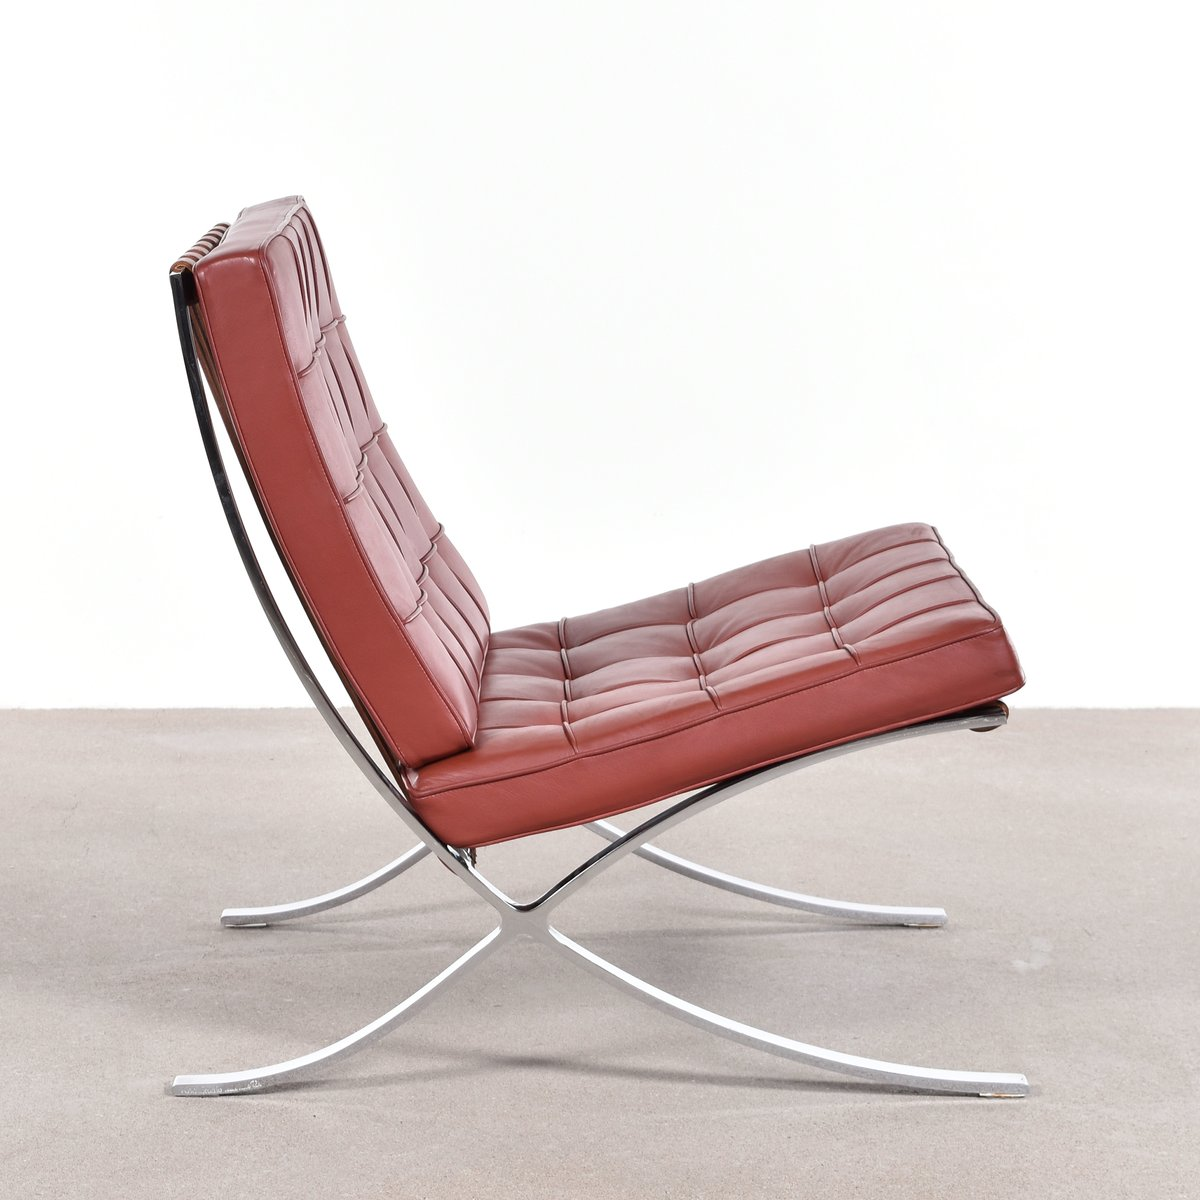 Barcelona Chair by Ludwig Mies van der Rohe for Knoll  sc 1 st  Pamono : mies van der rohe chaise lounge - Sectionals, Sofas & Couches